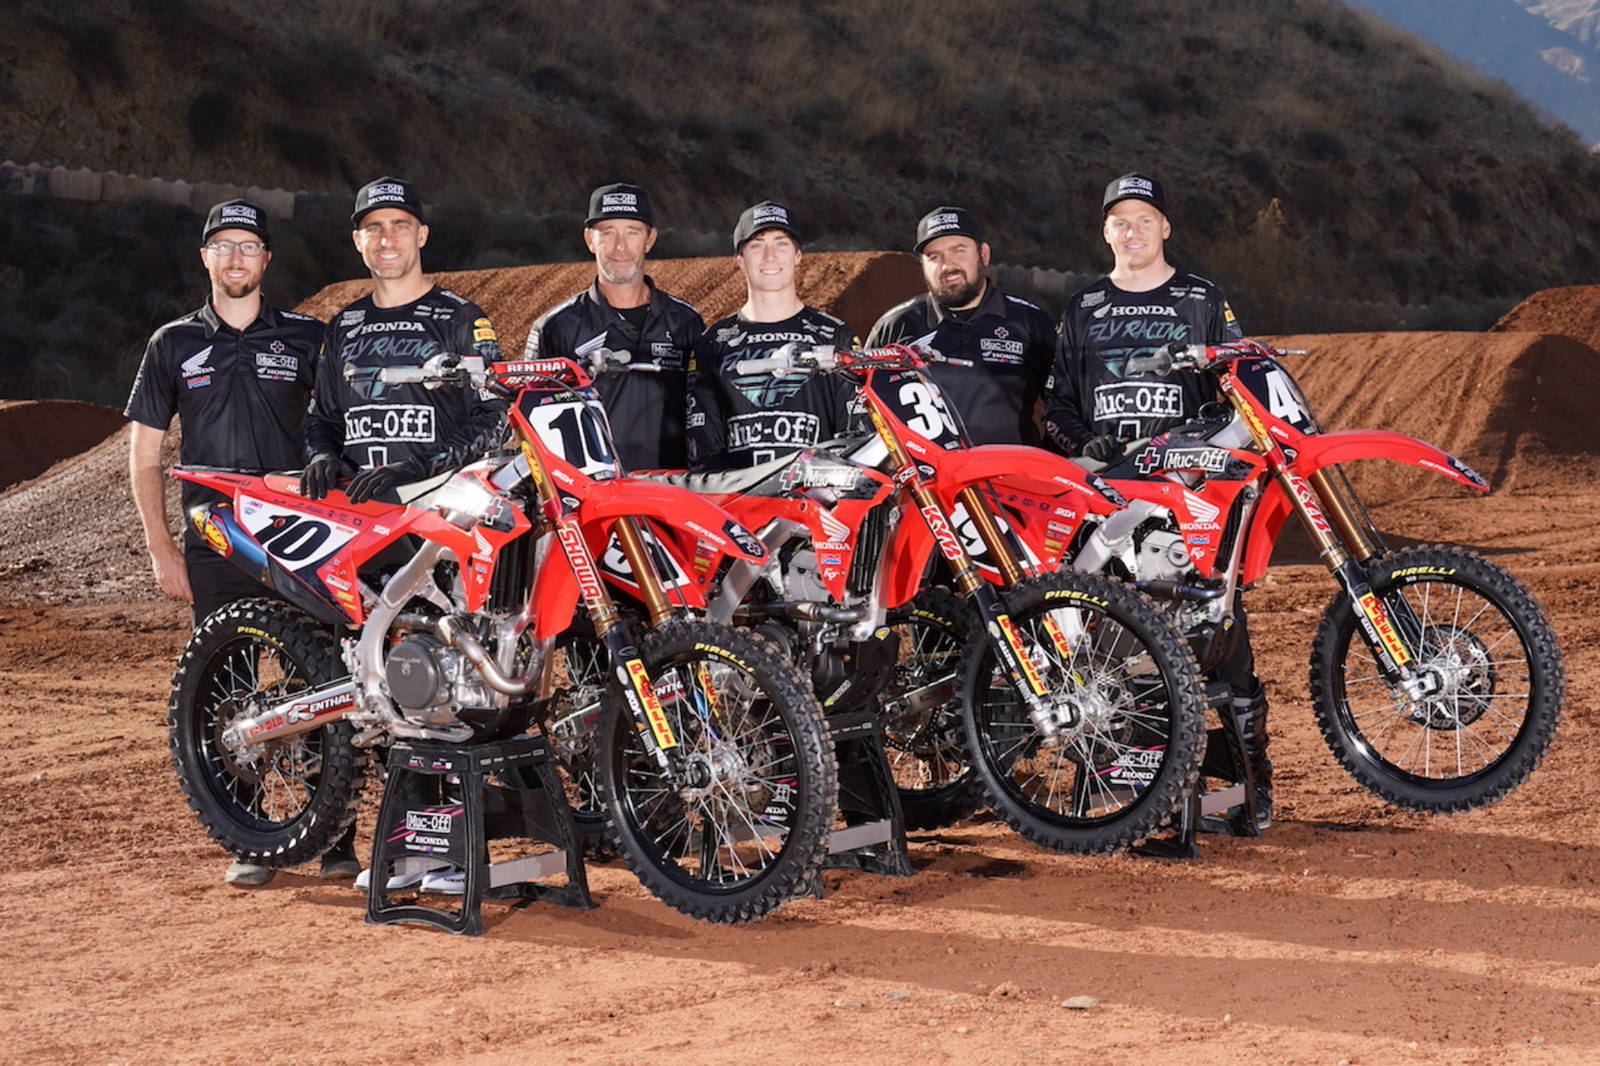 Muc-Off Racing Honda has partnered with Pirelli for the 2021 season and will field riders in both 250SX and 450SX Classes. | Photo: Muc-Off Racing Honda